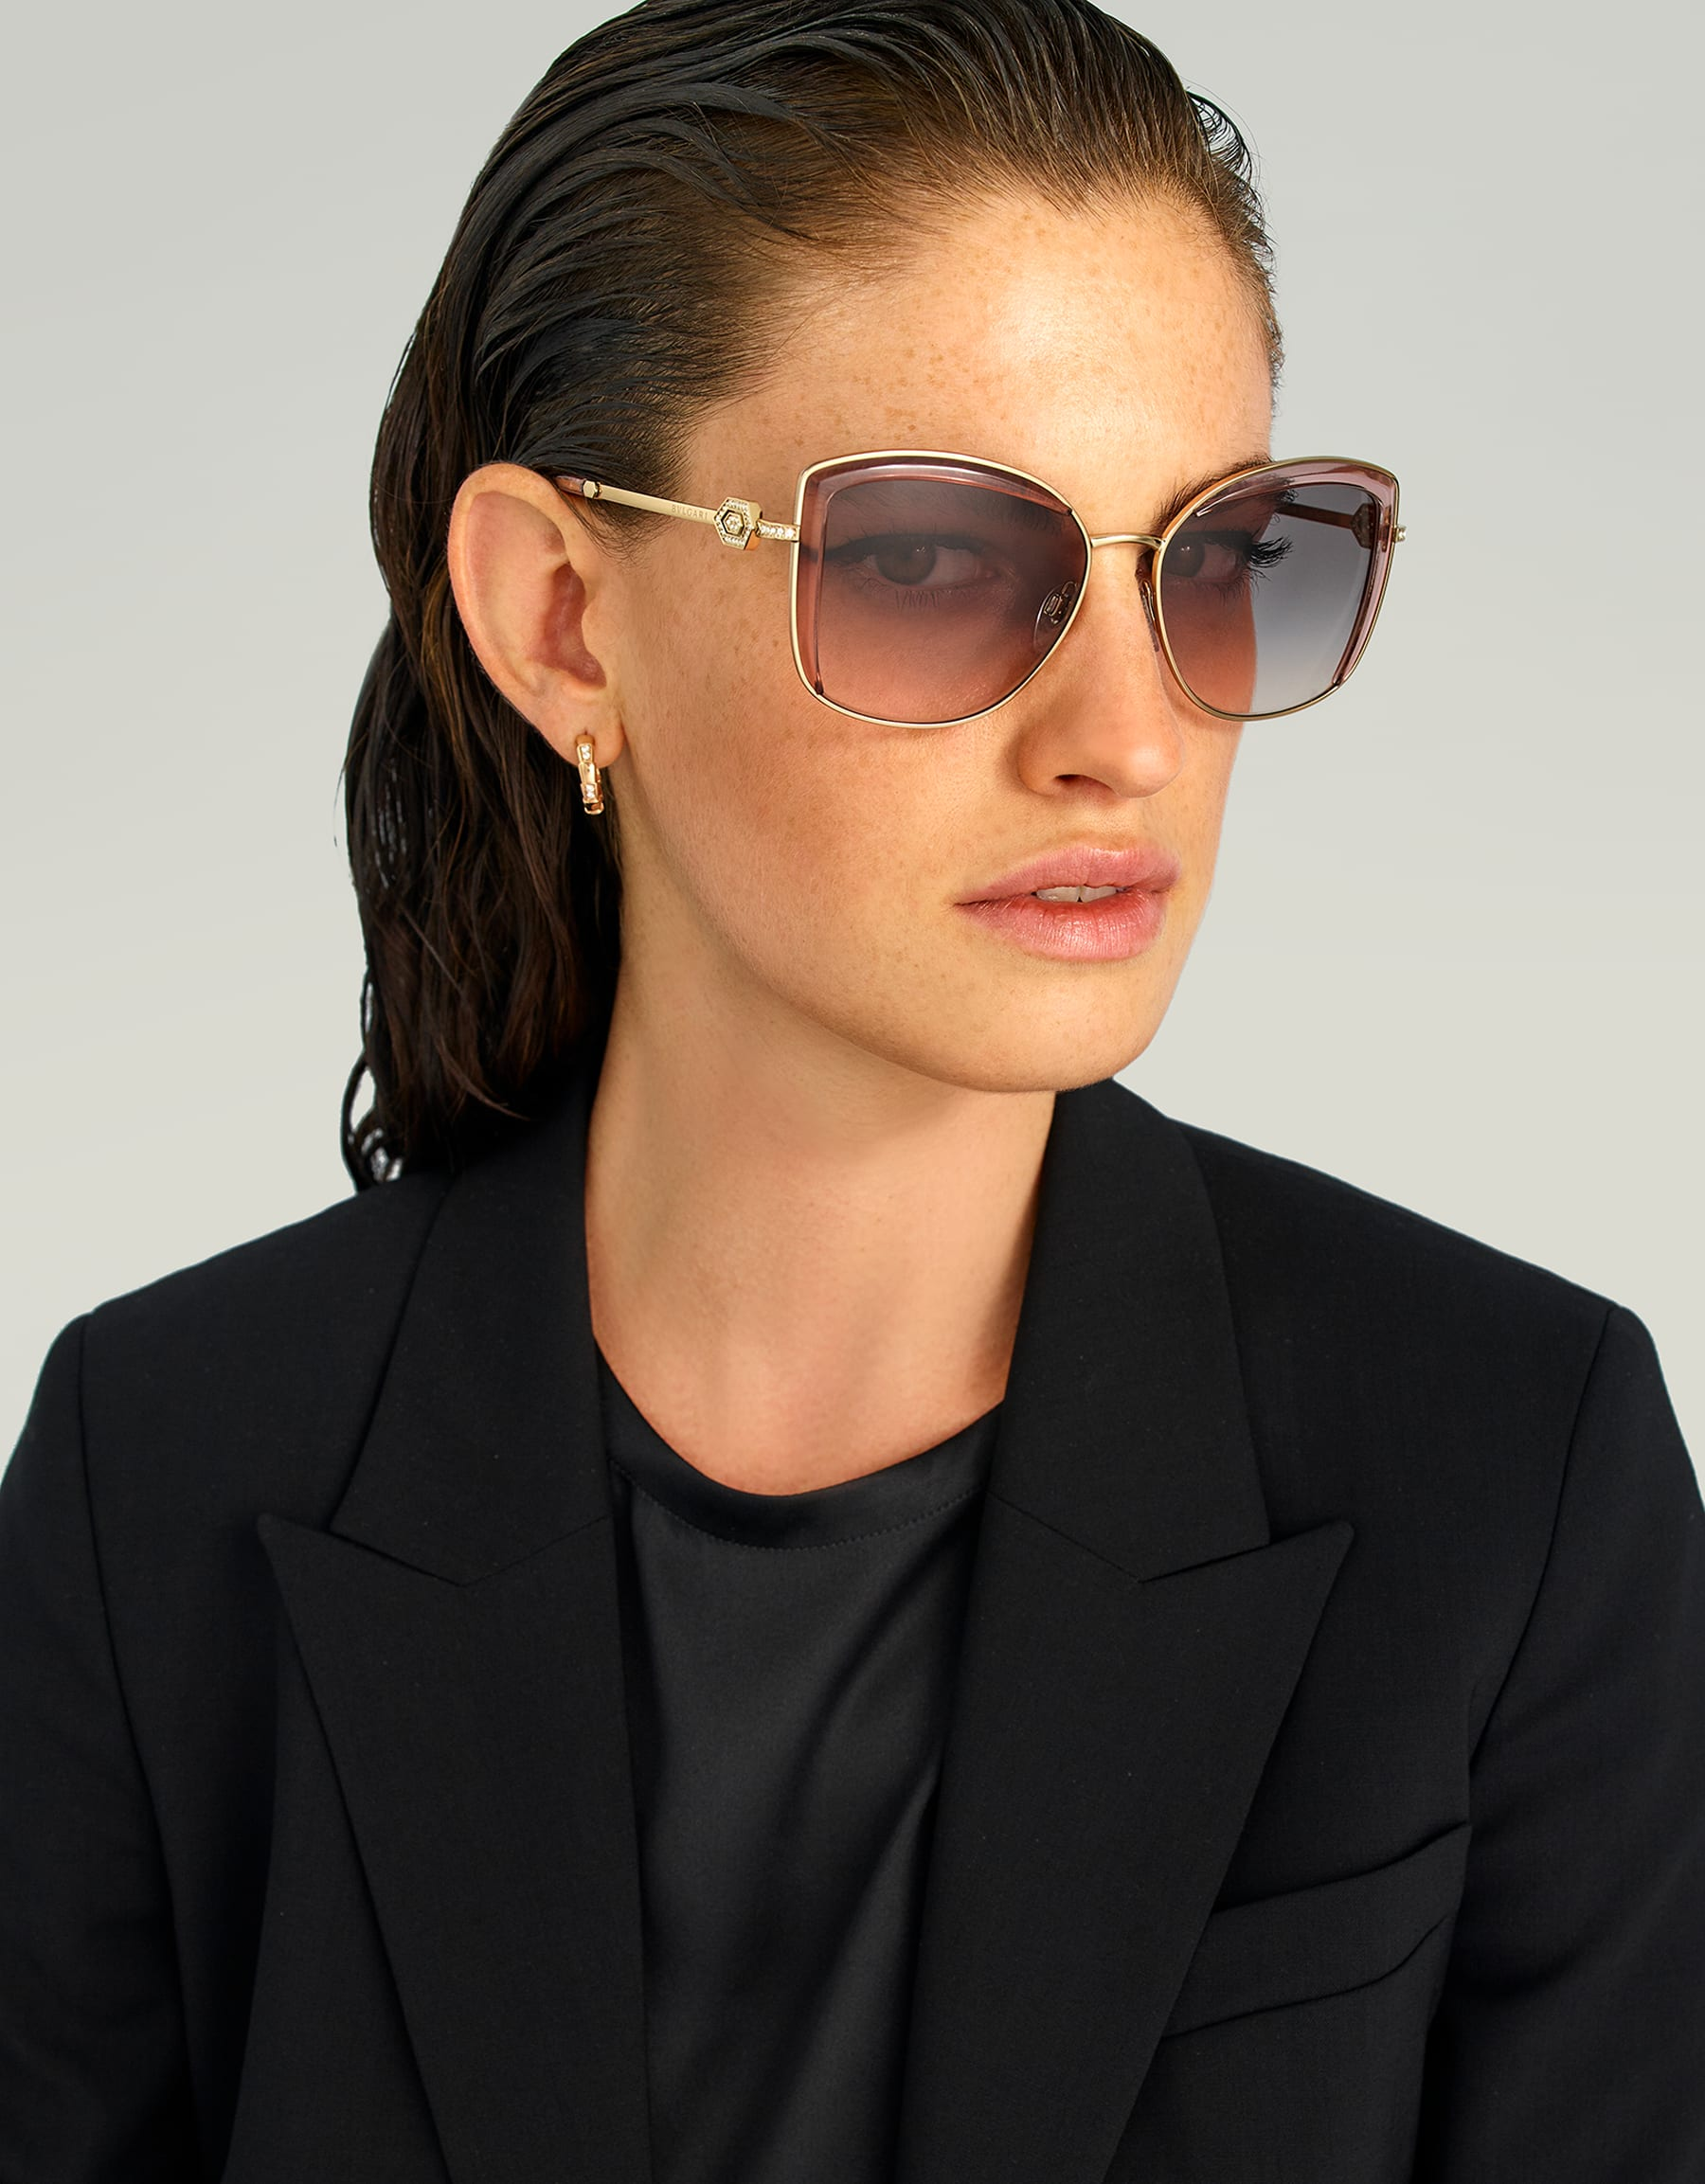 Bulgari Serpenti squared metal sunglasses with Serpenti openwork metal décor with crystals. 903905 image 3